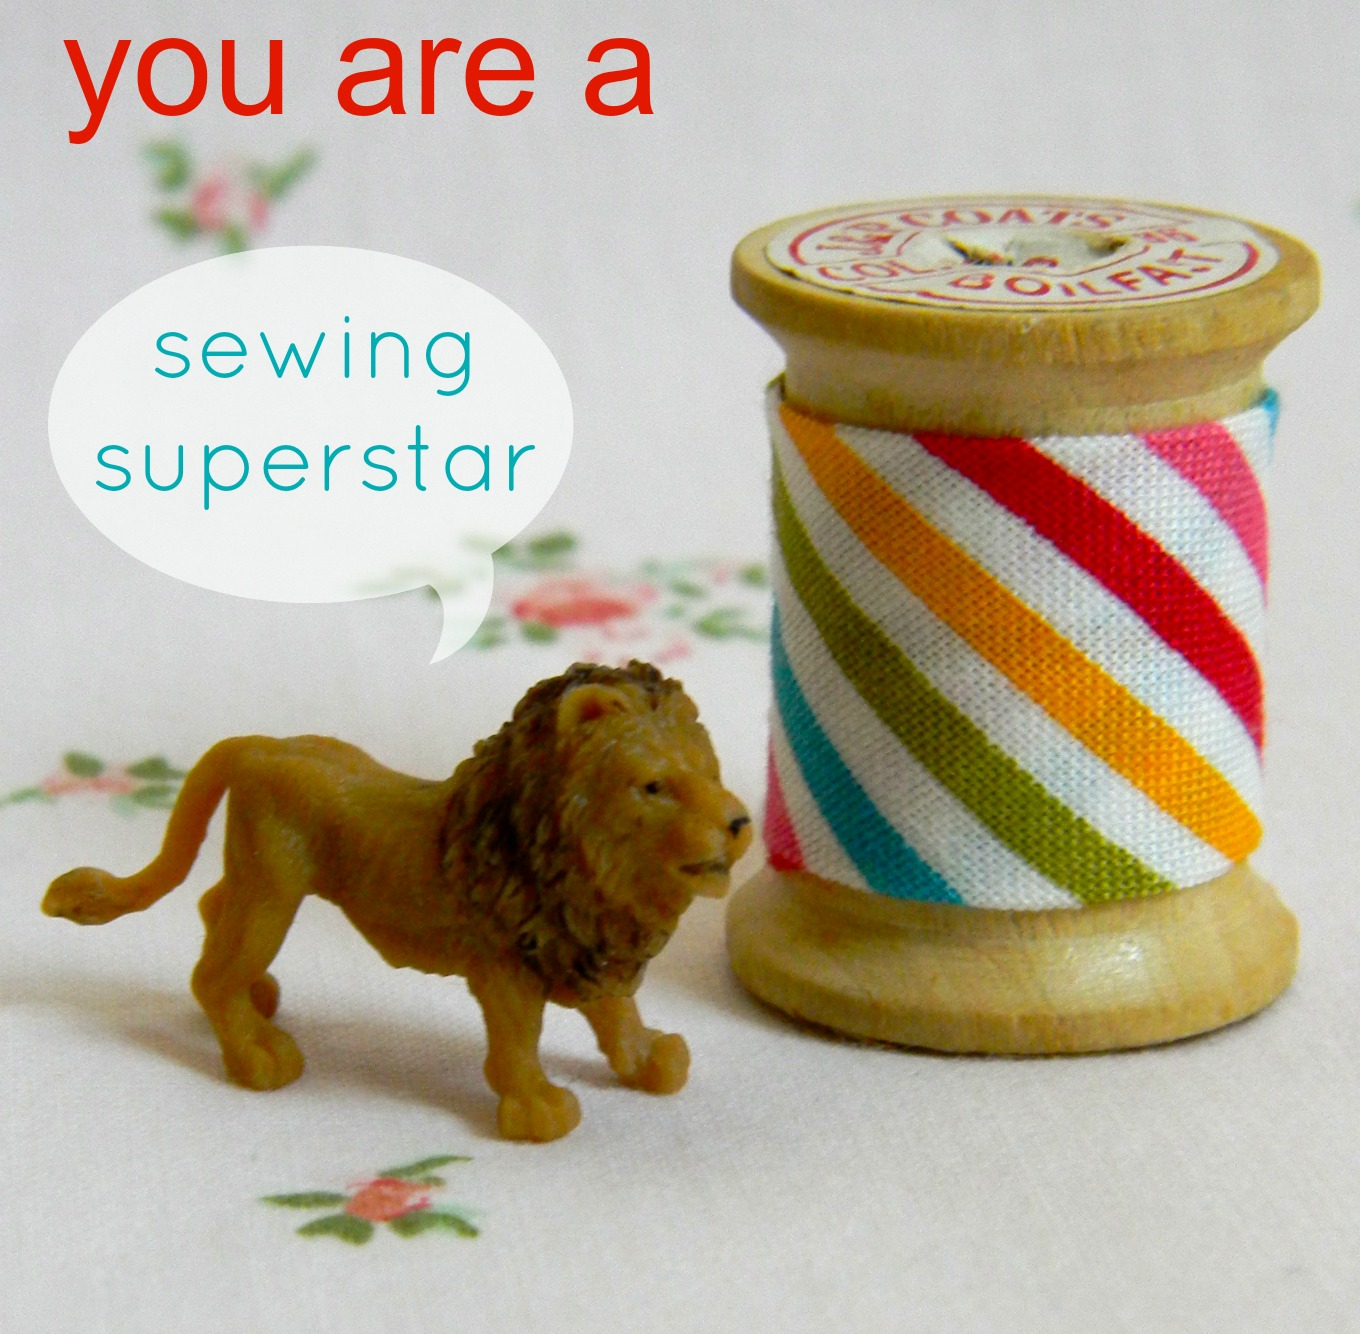 sewing superstar